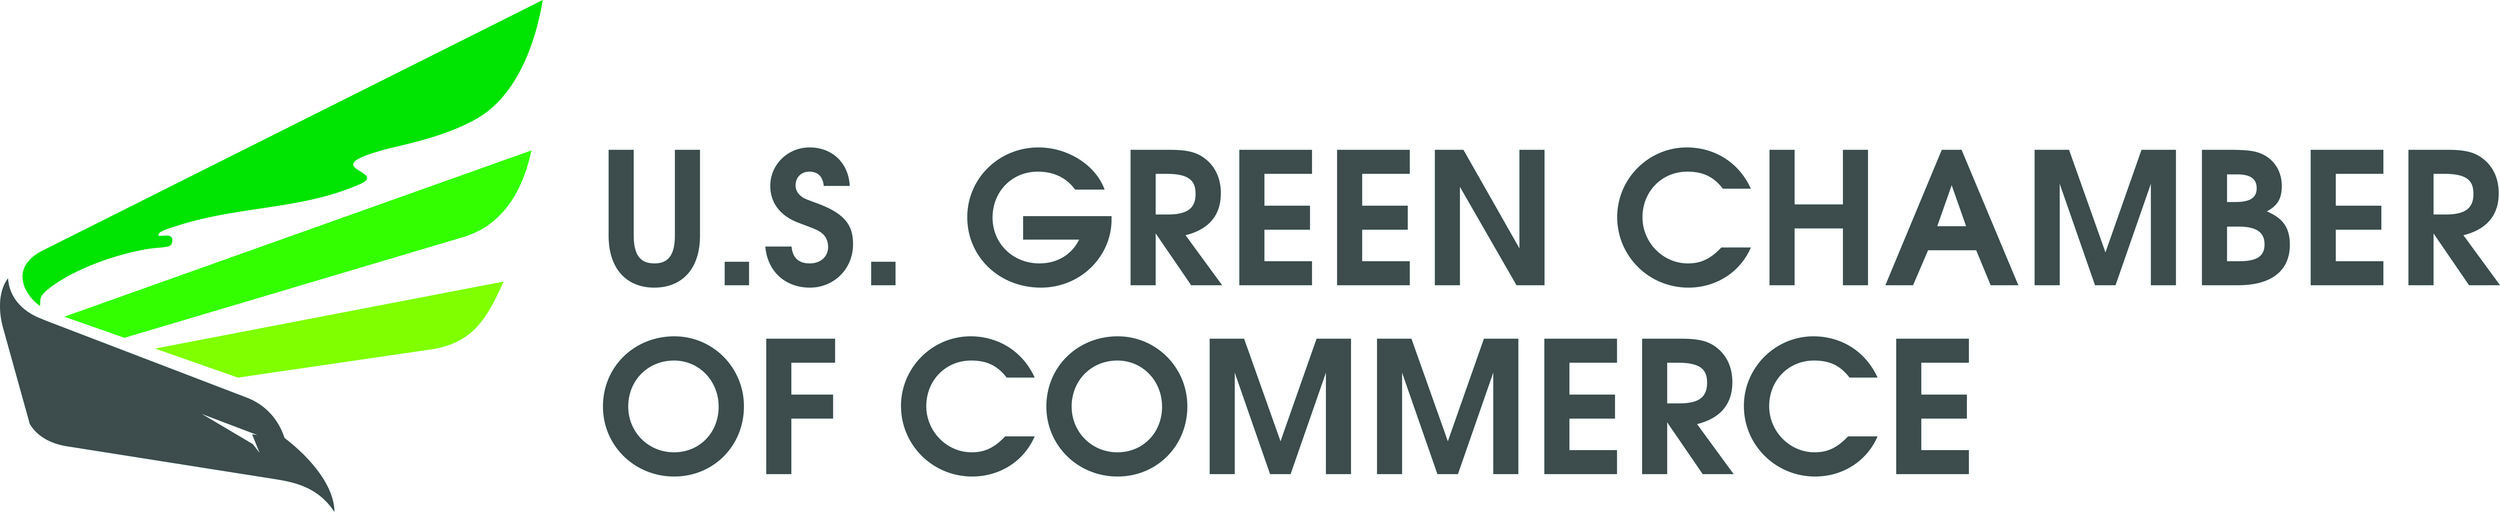 US Green Chamber of Commerce logo horizontal JPG-CMYK.jpg